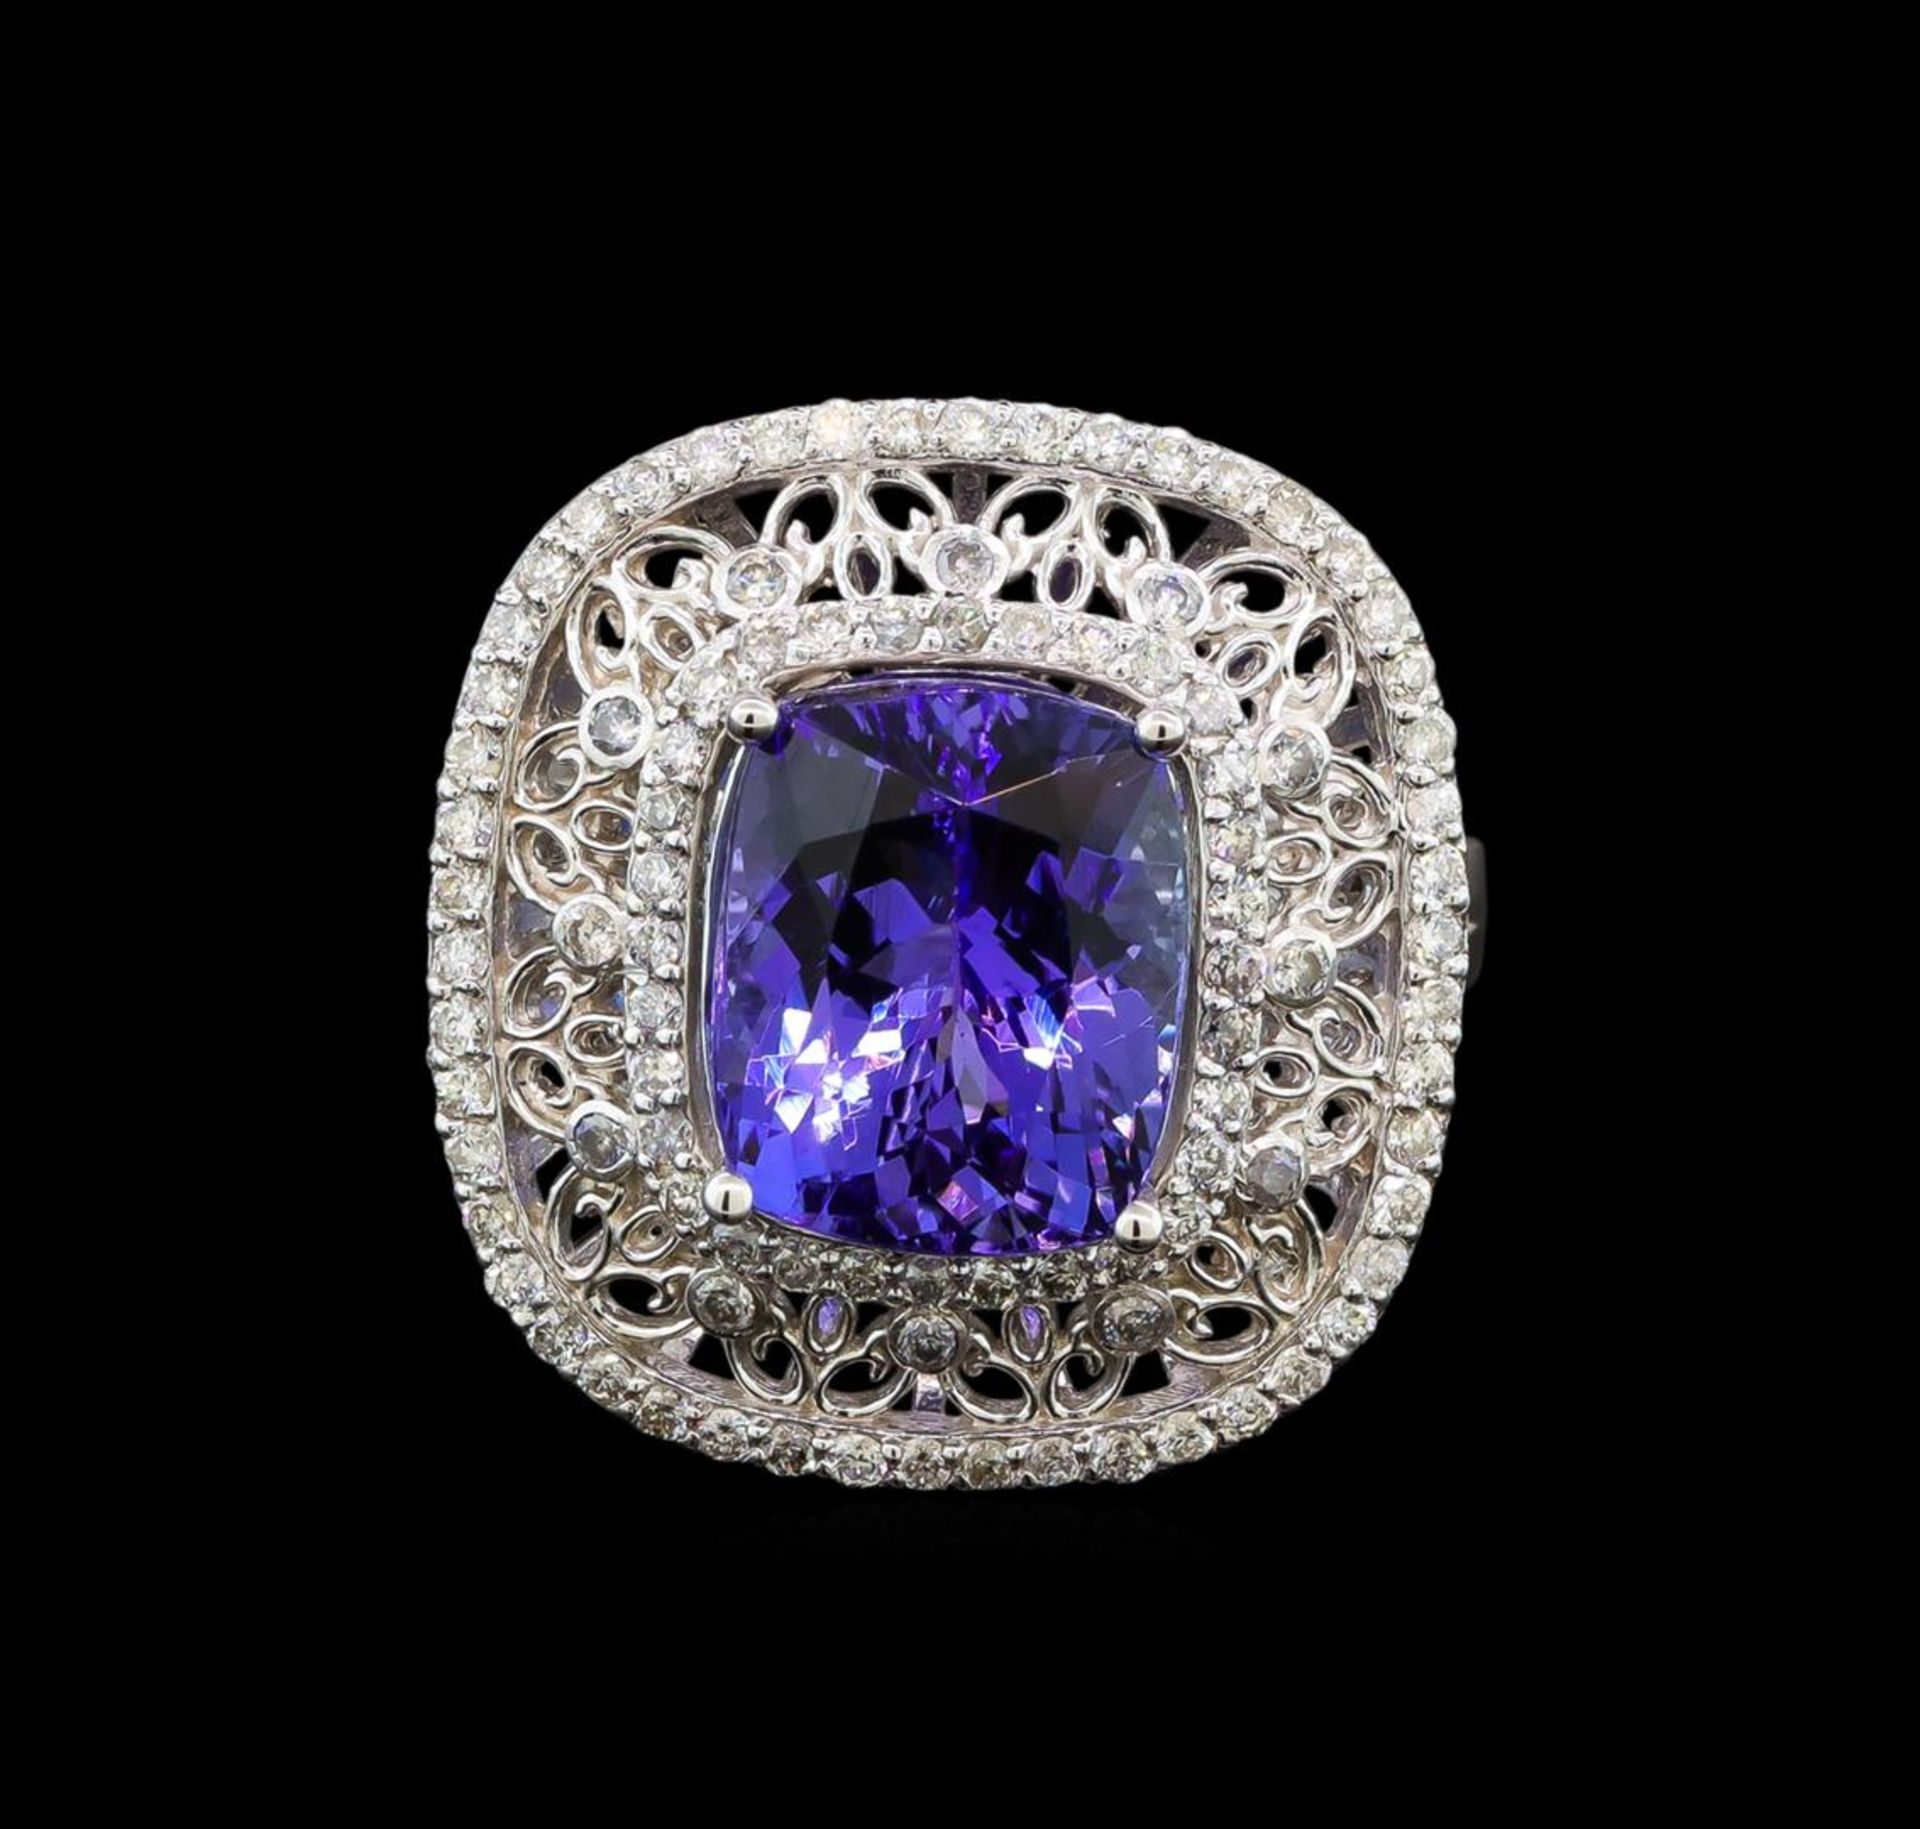 14KT White Gold 5.29 ctw Tanzanite and Diamond Ring - Image 2 of 5